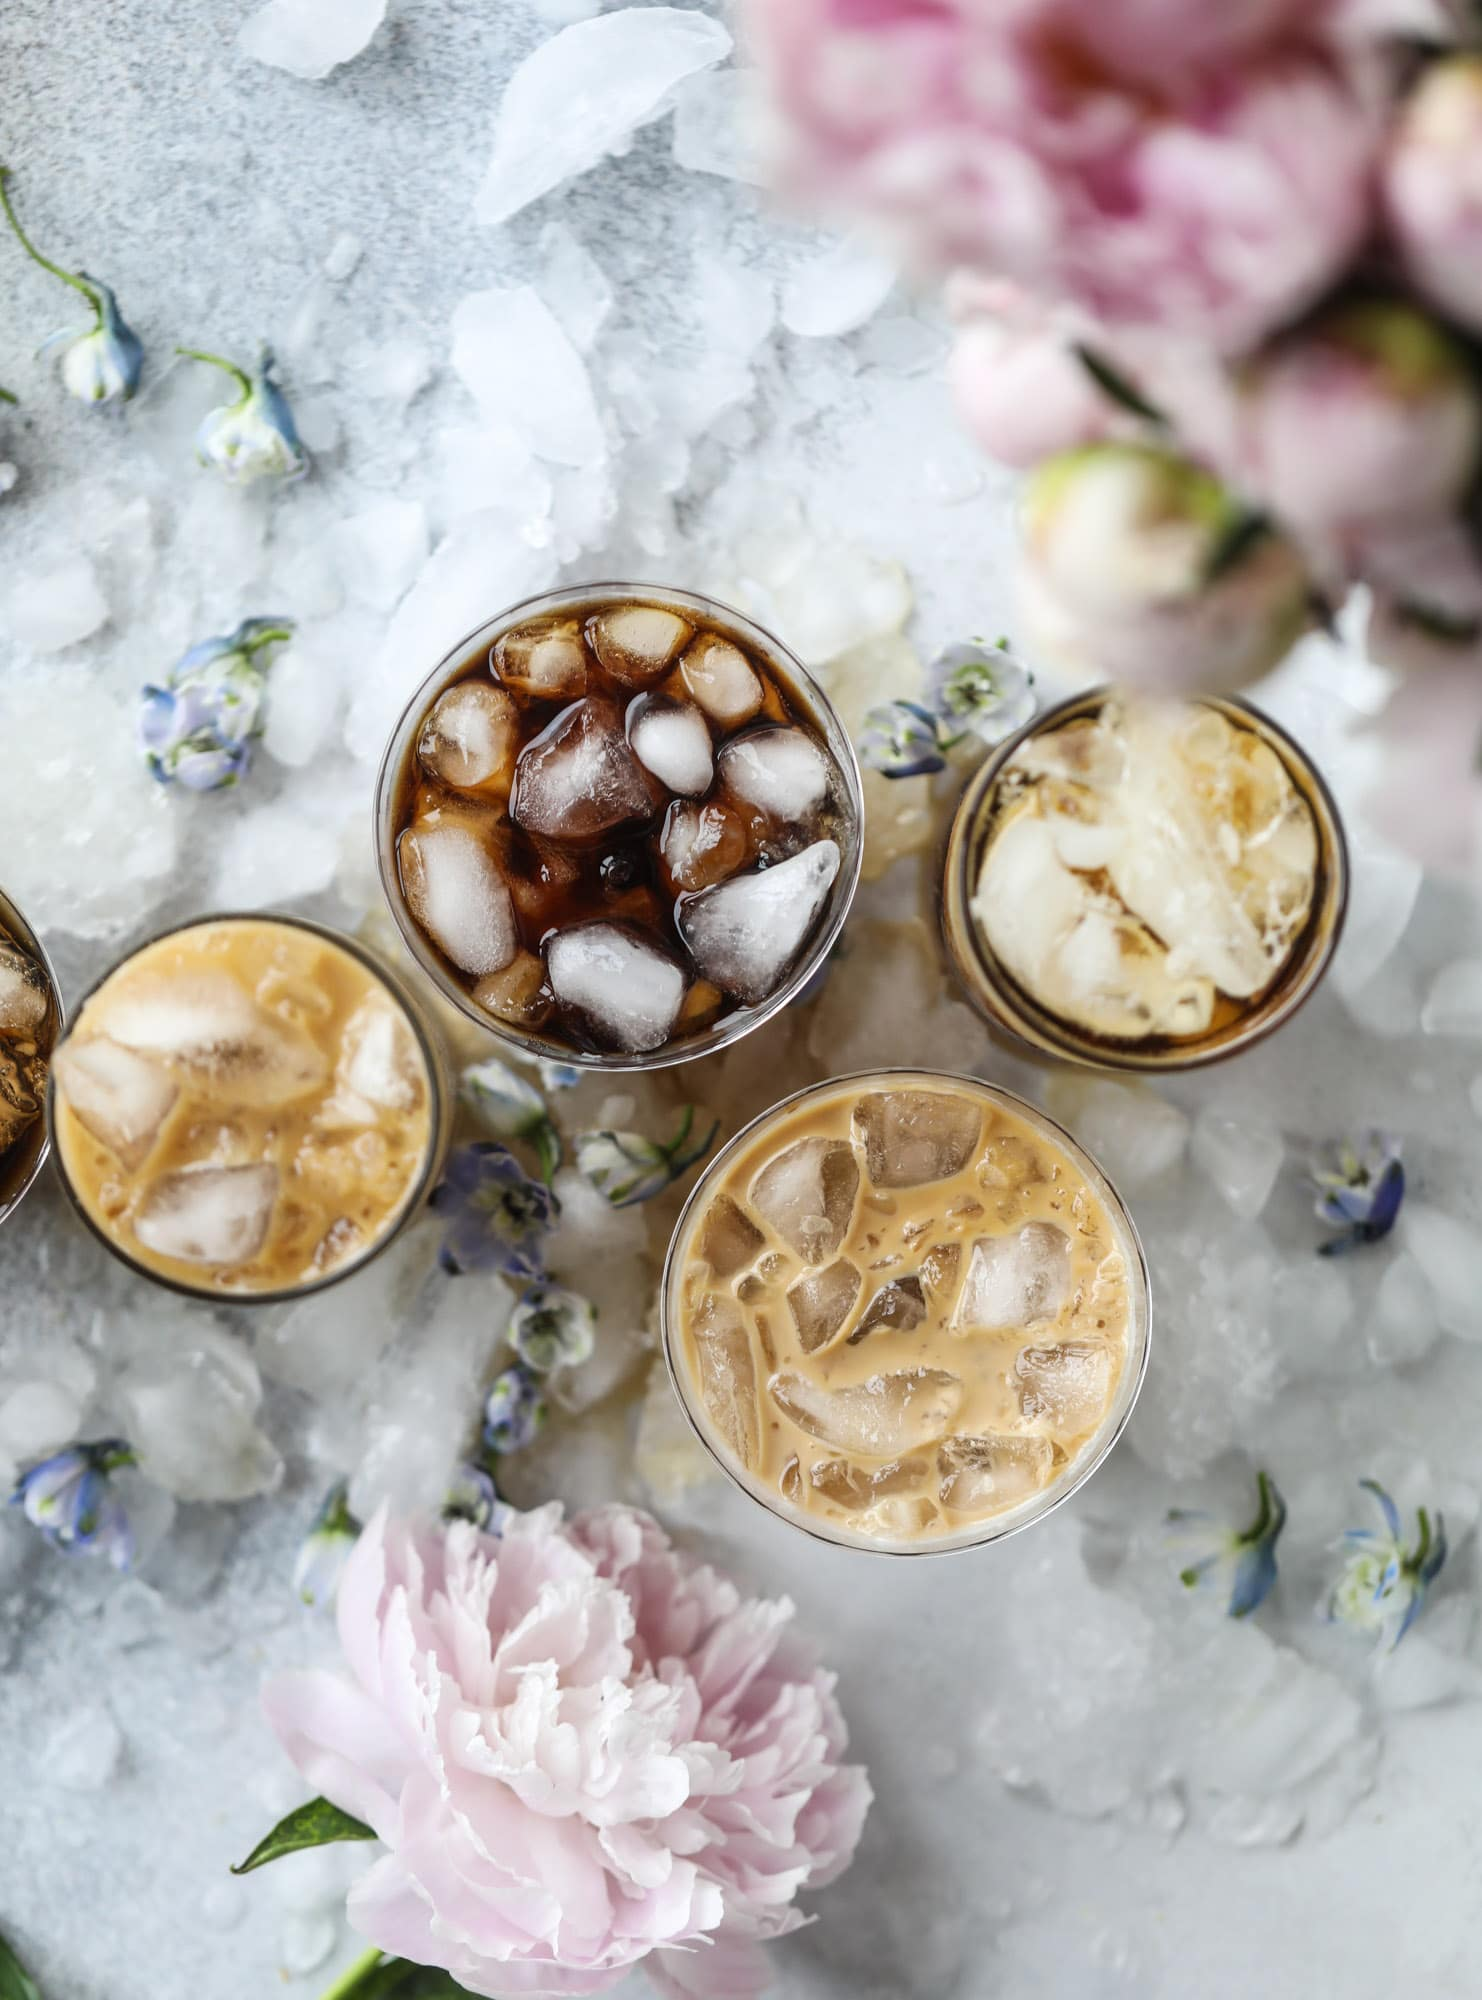 This iced coffee soda is so perfect for summer! Rich coconut syrup, cold brew coffee, cream (or coconut cream!) if you'd like it and lots of bubbly soda. Tastes refreshing, feels like a cocktail and still gives you a pick-me-up! I howsweeteats.com #iced #coffee #soda #coconut